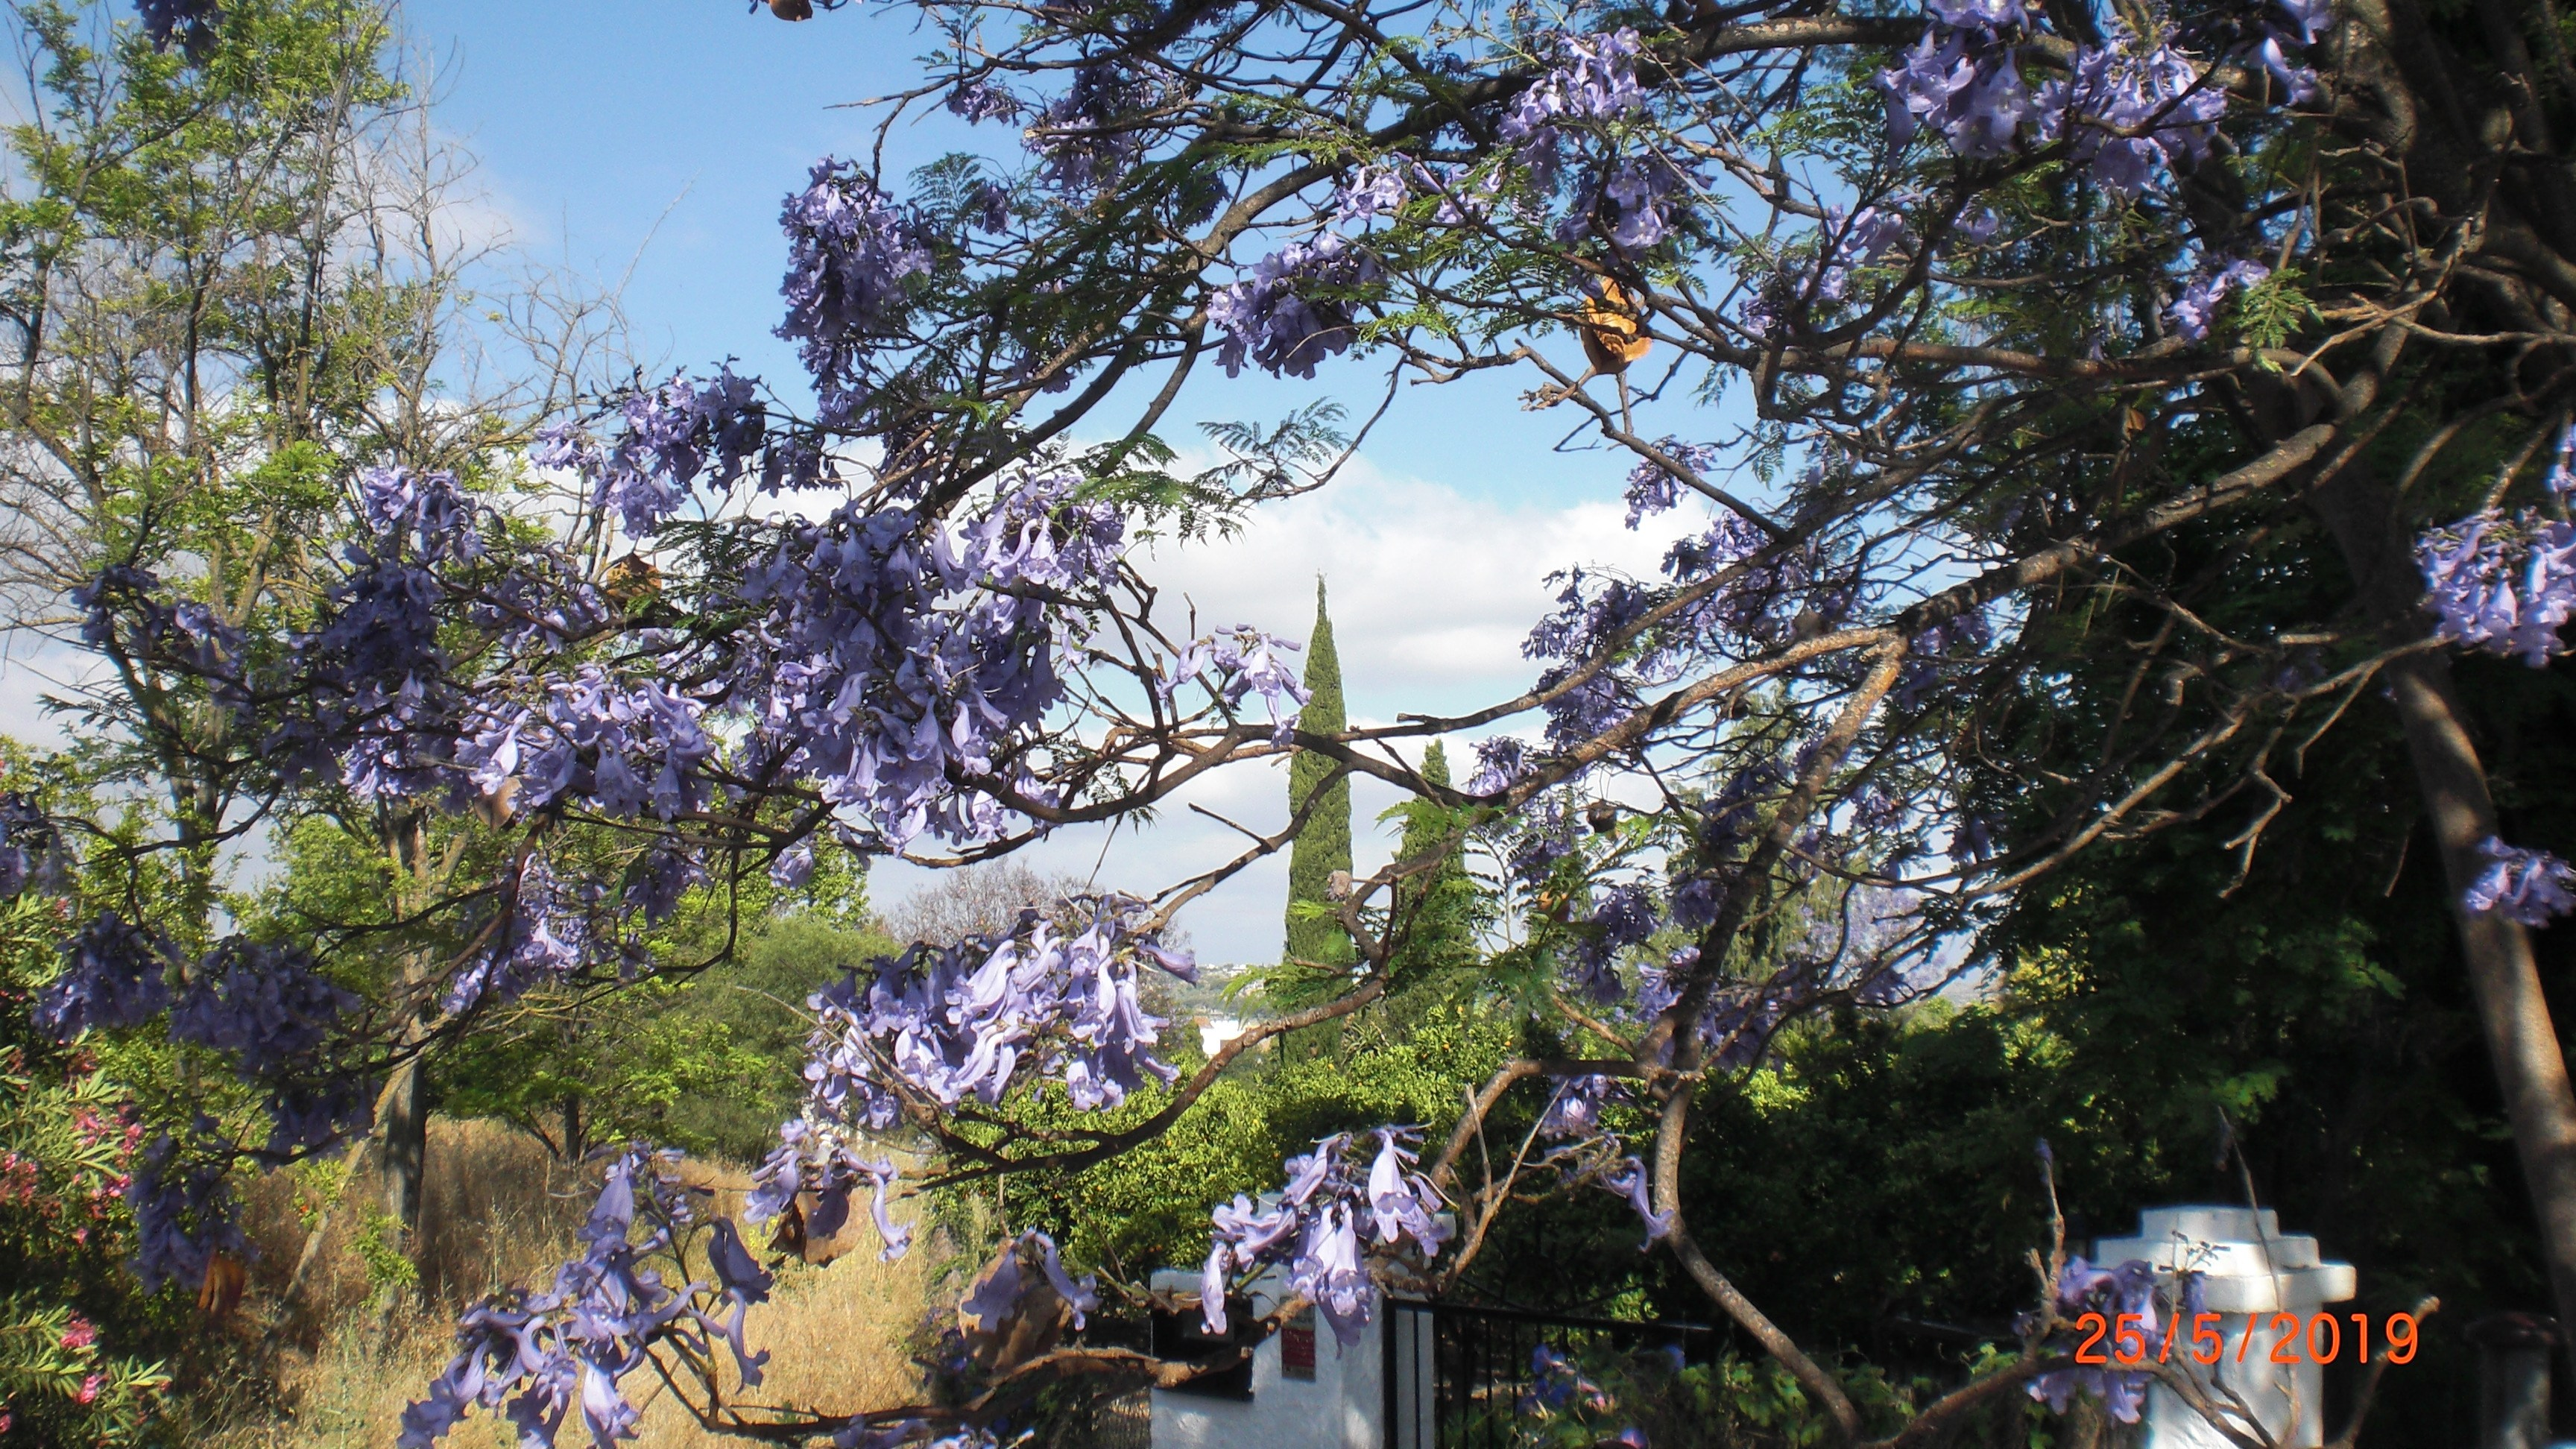 Jacaranda at the entrance